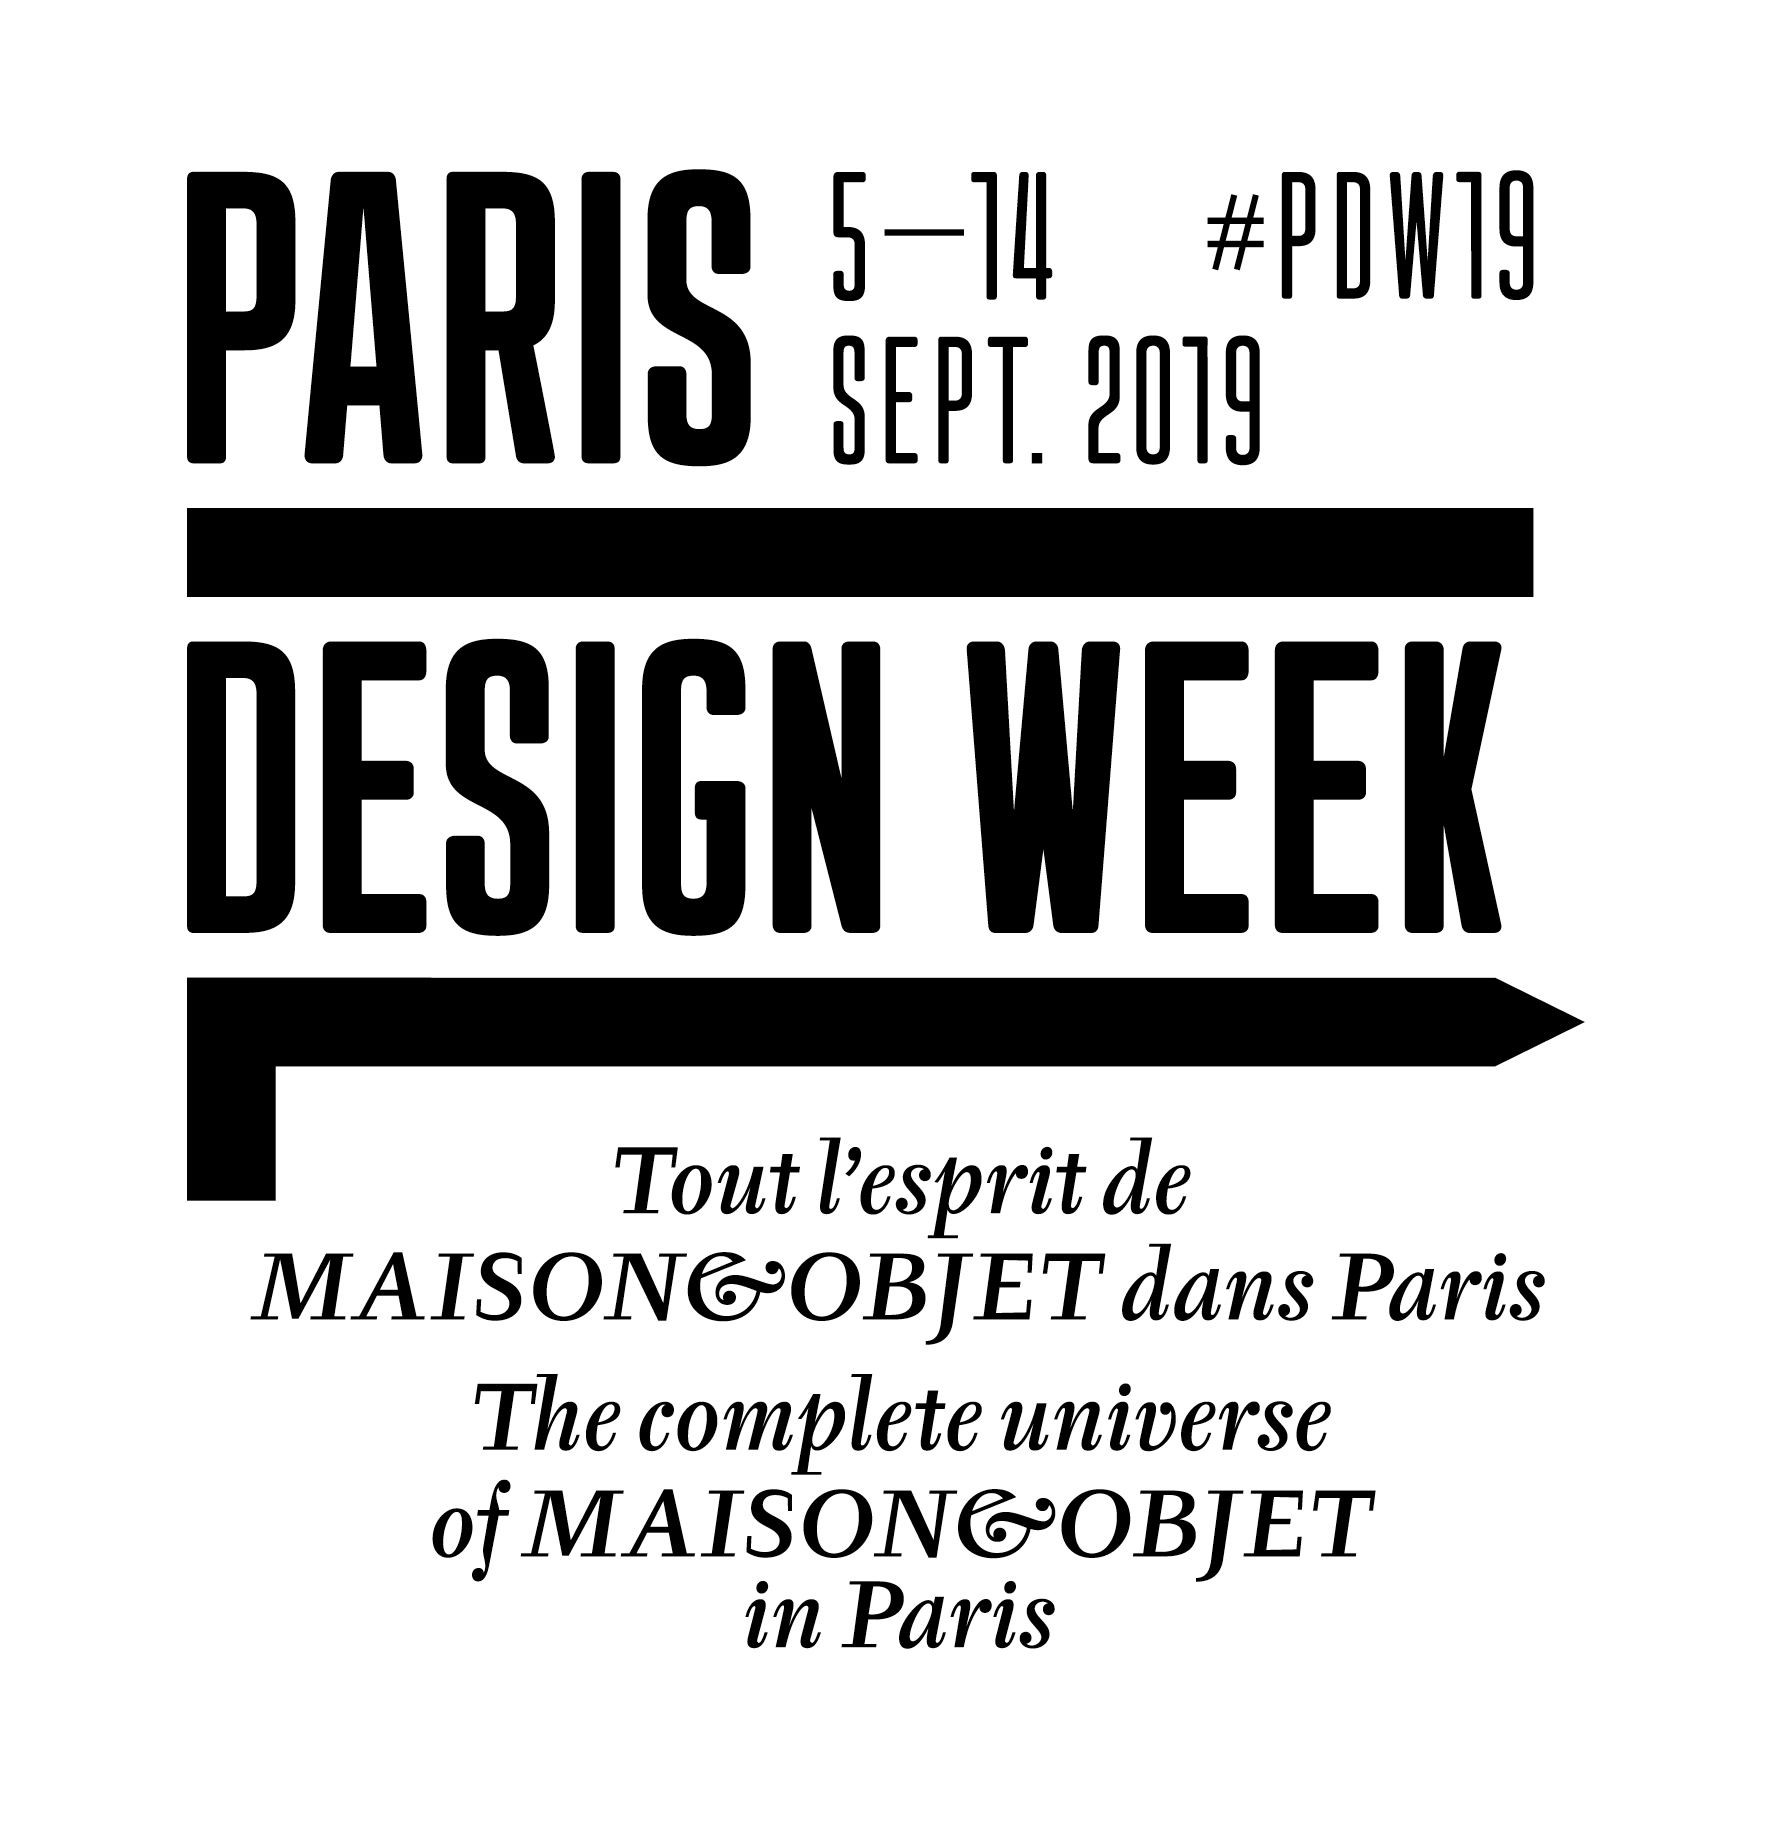 BOON_ROOM - We are pleased to invite you to Paris Design Week at BOON.Discover more than 40 international design brands, artists, and collectables.Open from 10H-20H30 5th to the 14th of SeptemberAfter-work refreshments  everyday from 18H-20H30Vernisage/ day of the Marais 7th of September 18H-23HDiscover; BOON_ART & DESIGN